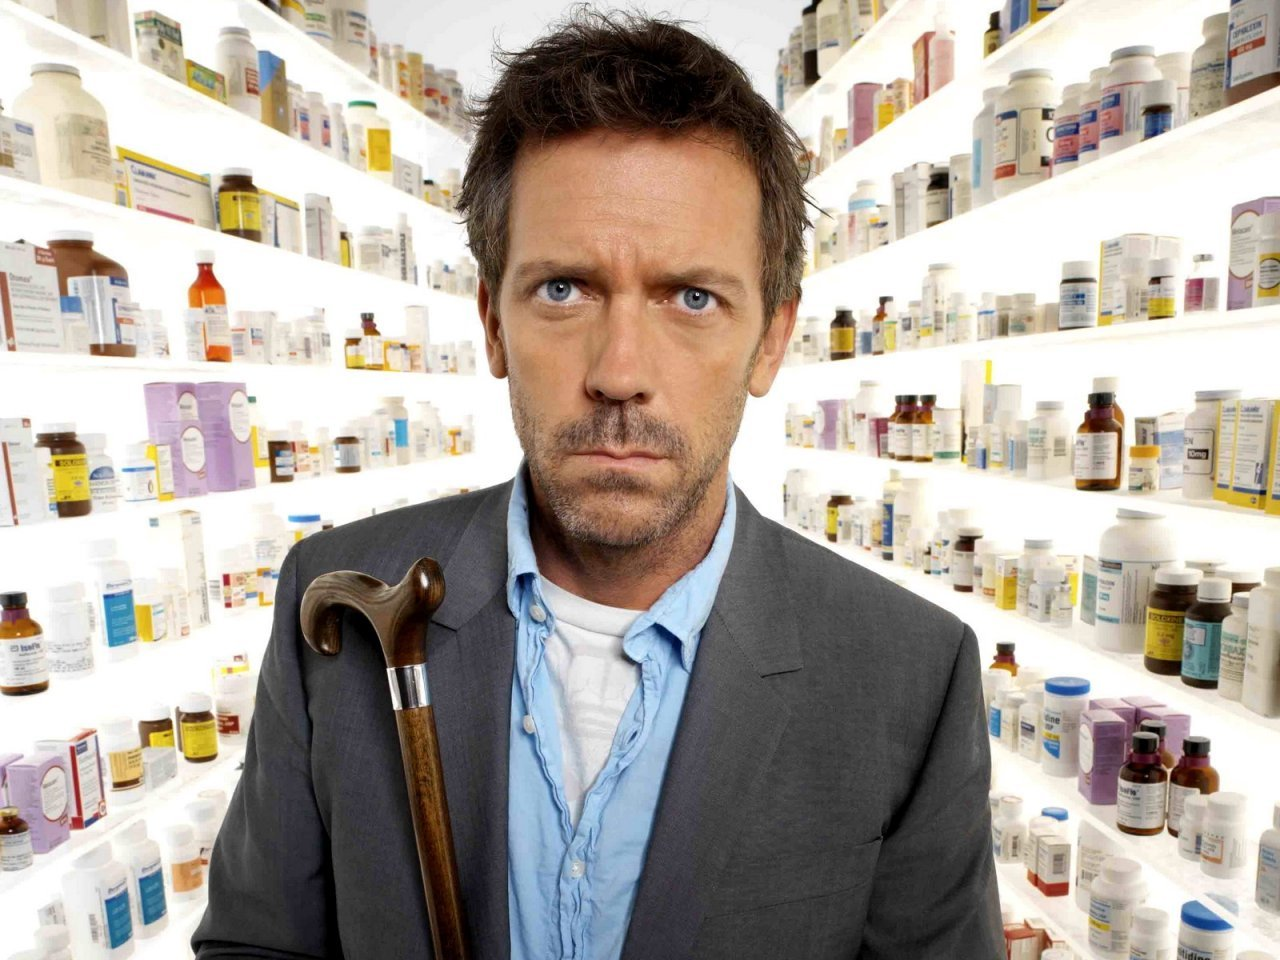 Gregory House from House M.D.